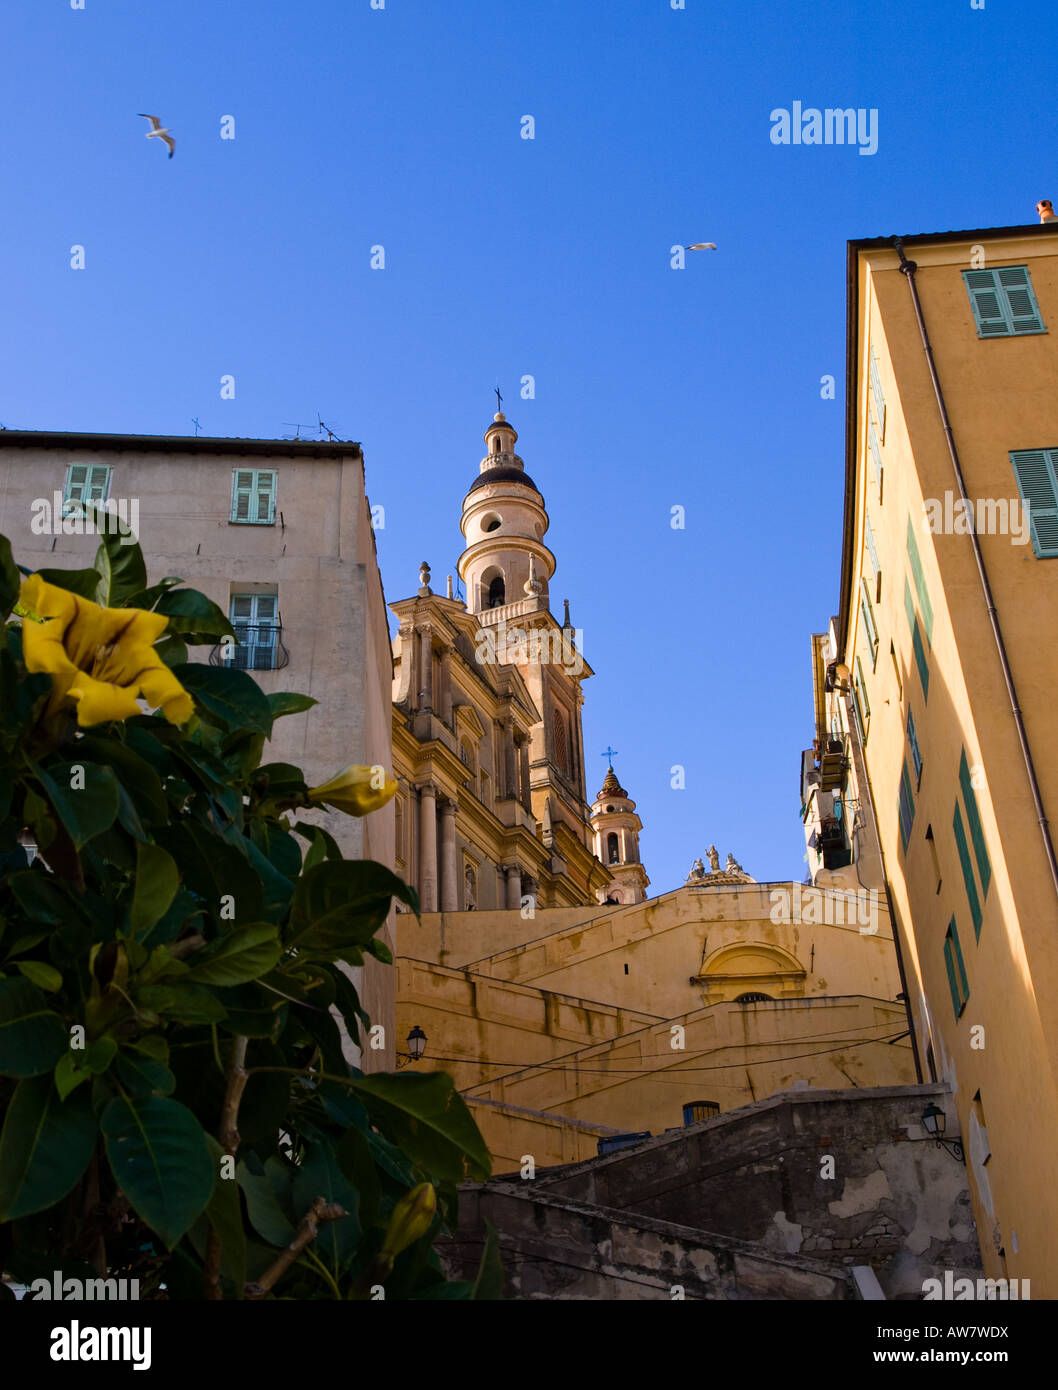 A view of the grand Église St-Michel (Church of St. Michael) in Menton, France. Stock Photo